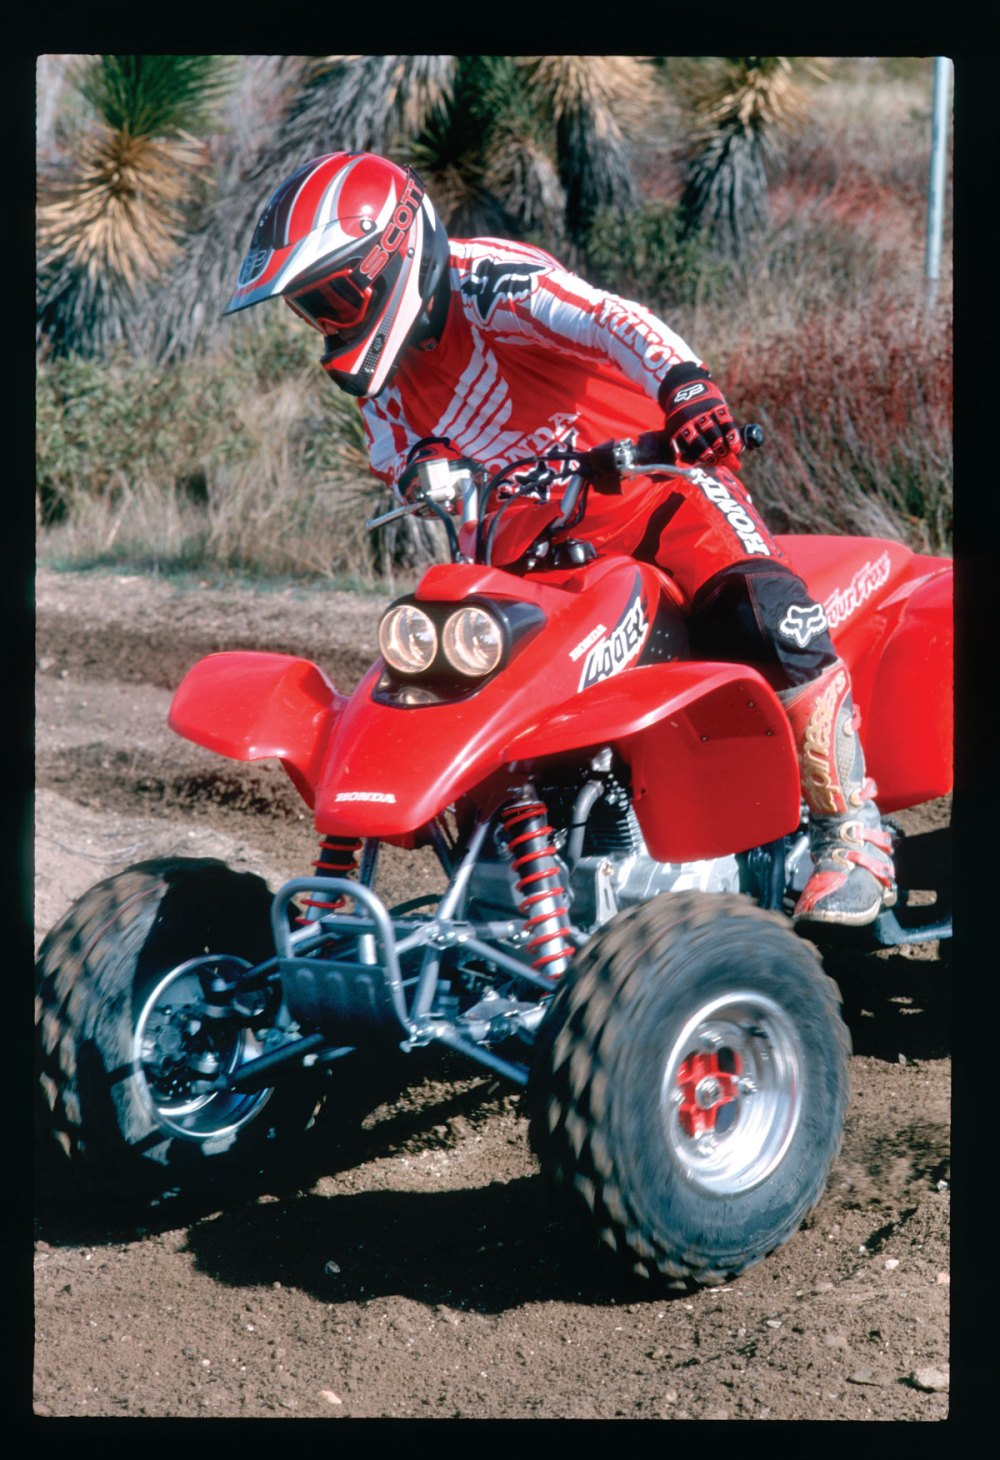 medium resolution of the 1996 honda xr400r motorcycle was a ground breaker in its own right prior to that honda seemed disinterested in the off road motorcycle market